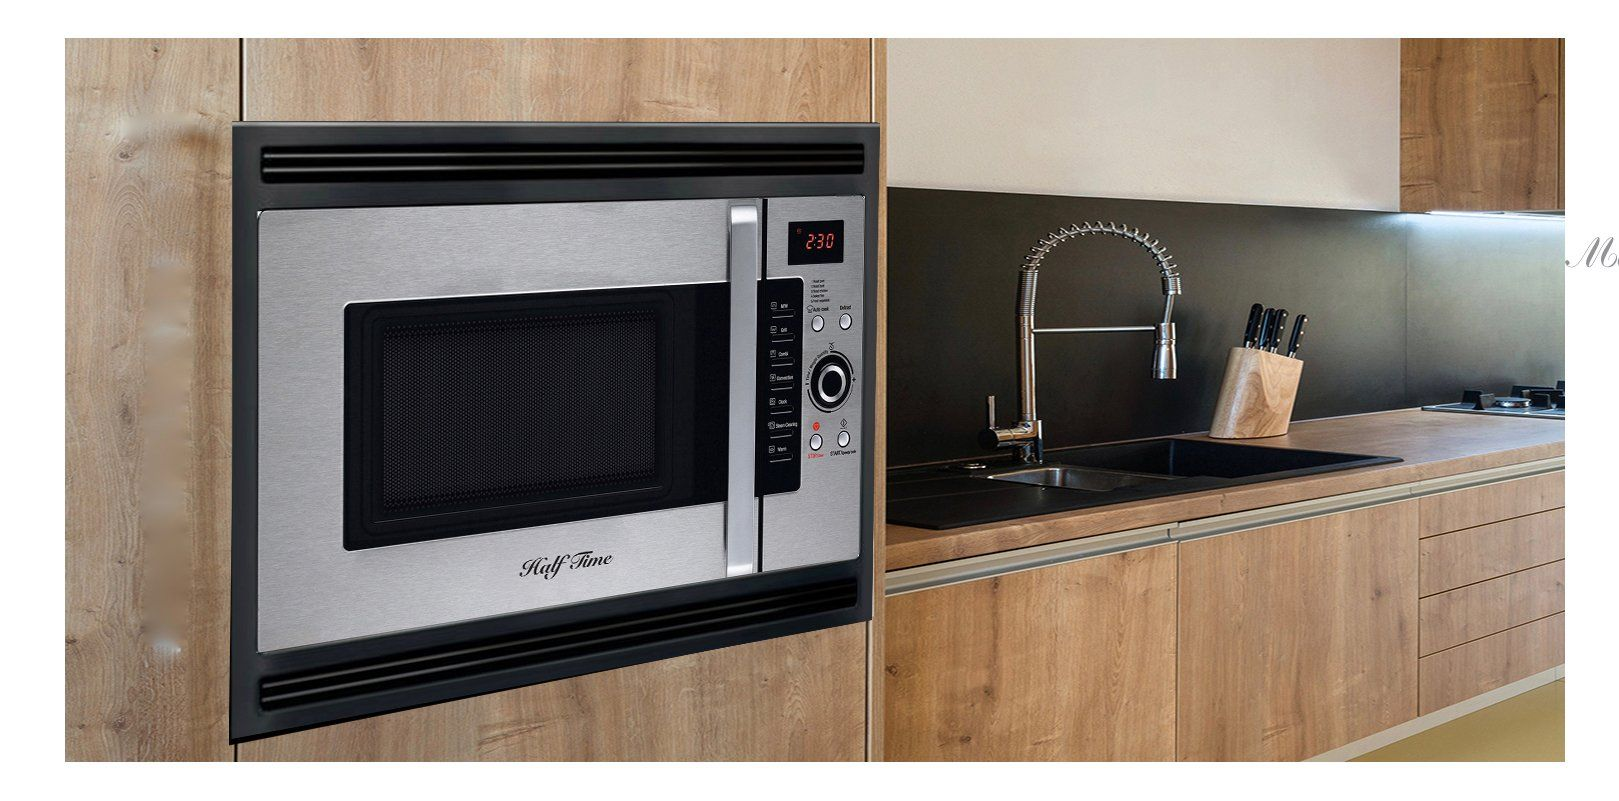 Convection Microwave Included Manufacturers Warranty In 2020 Microwave Convection Oven Convection Microwaves Microwave